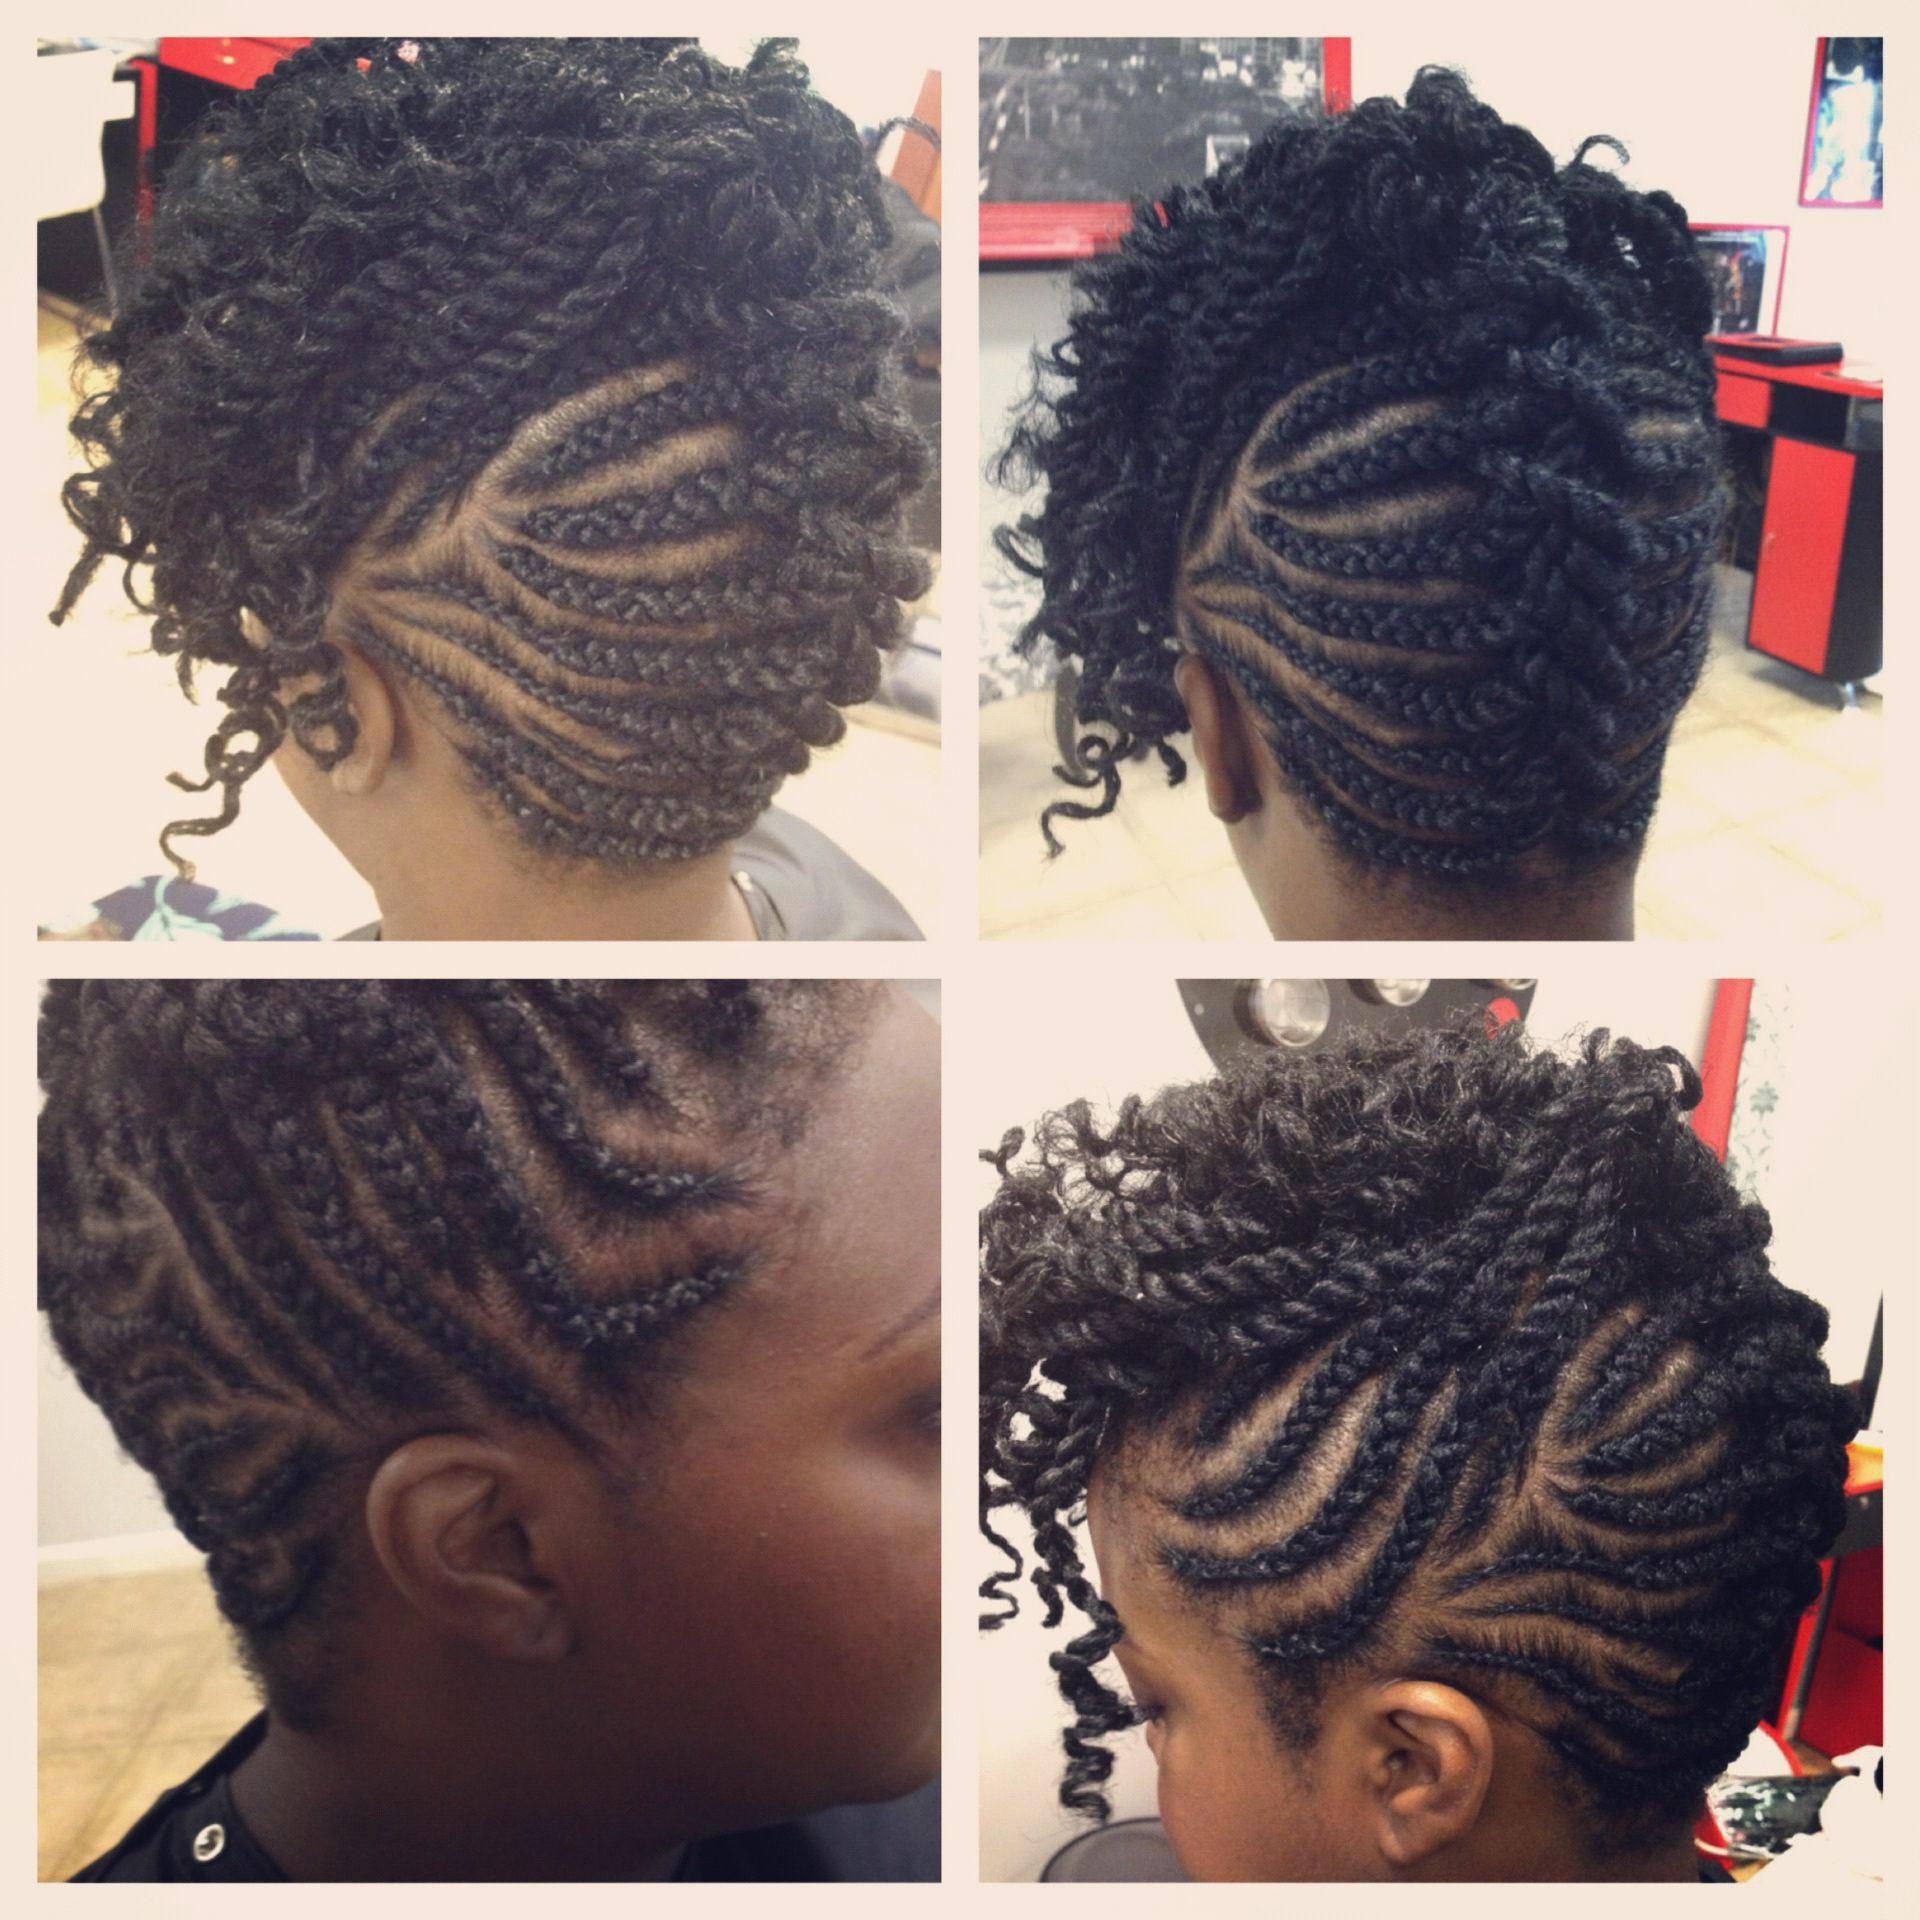 Mohawk Braids With Single Rope Twist Up Front (View 5 of 20)